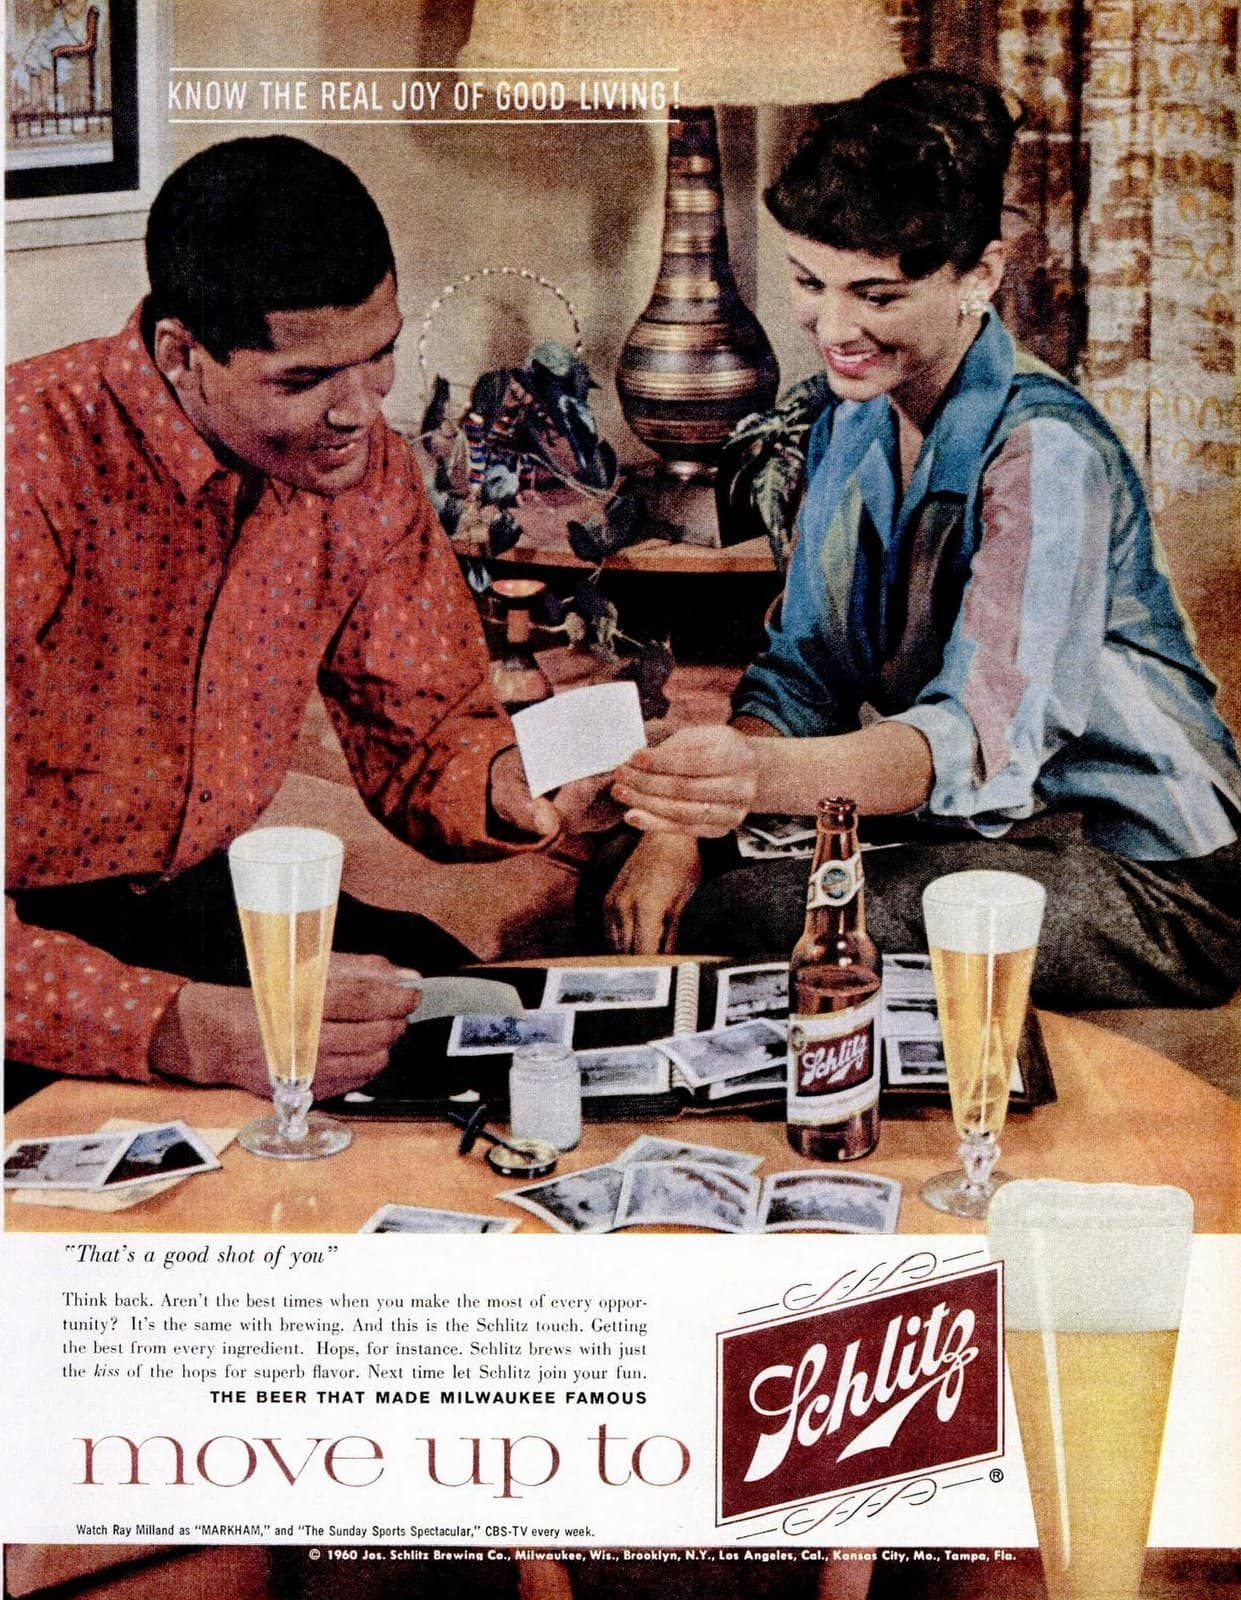 Couple at home with beer and photos - Move up to Schlitz (1960)